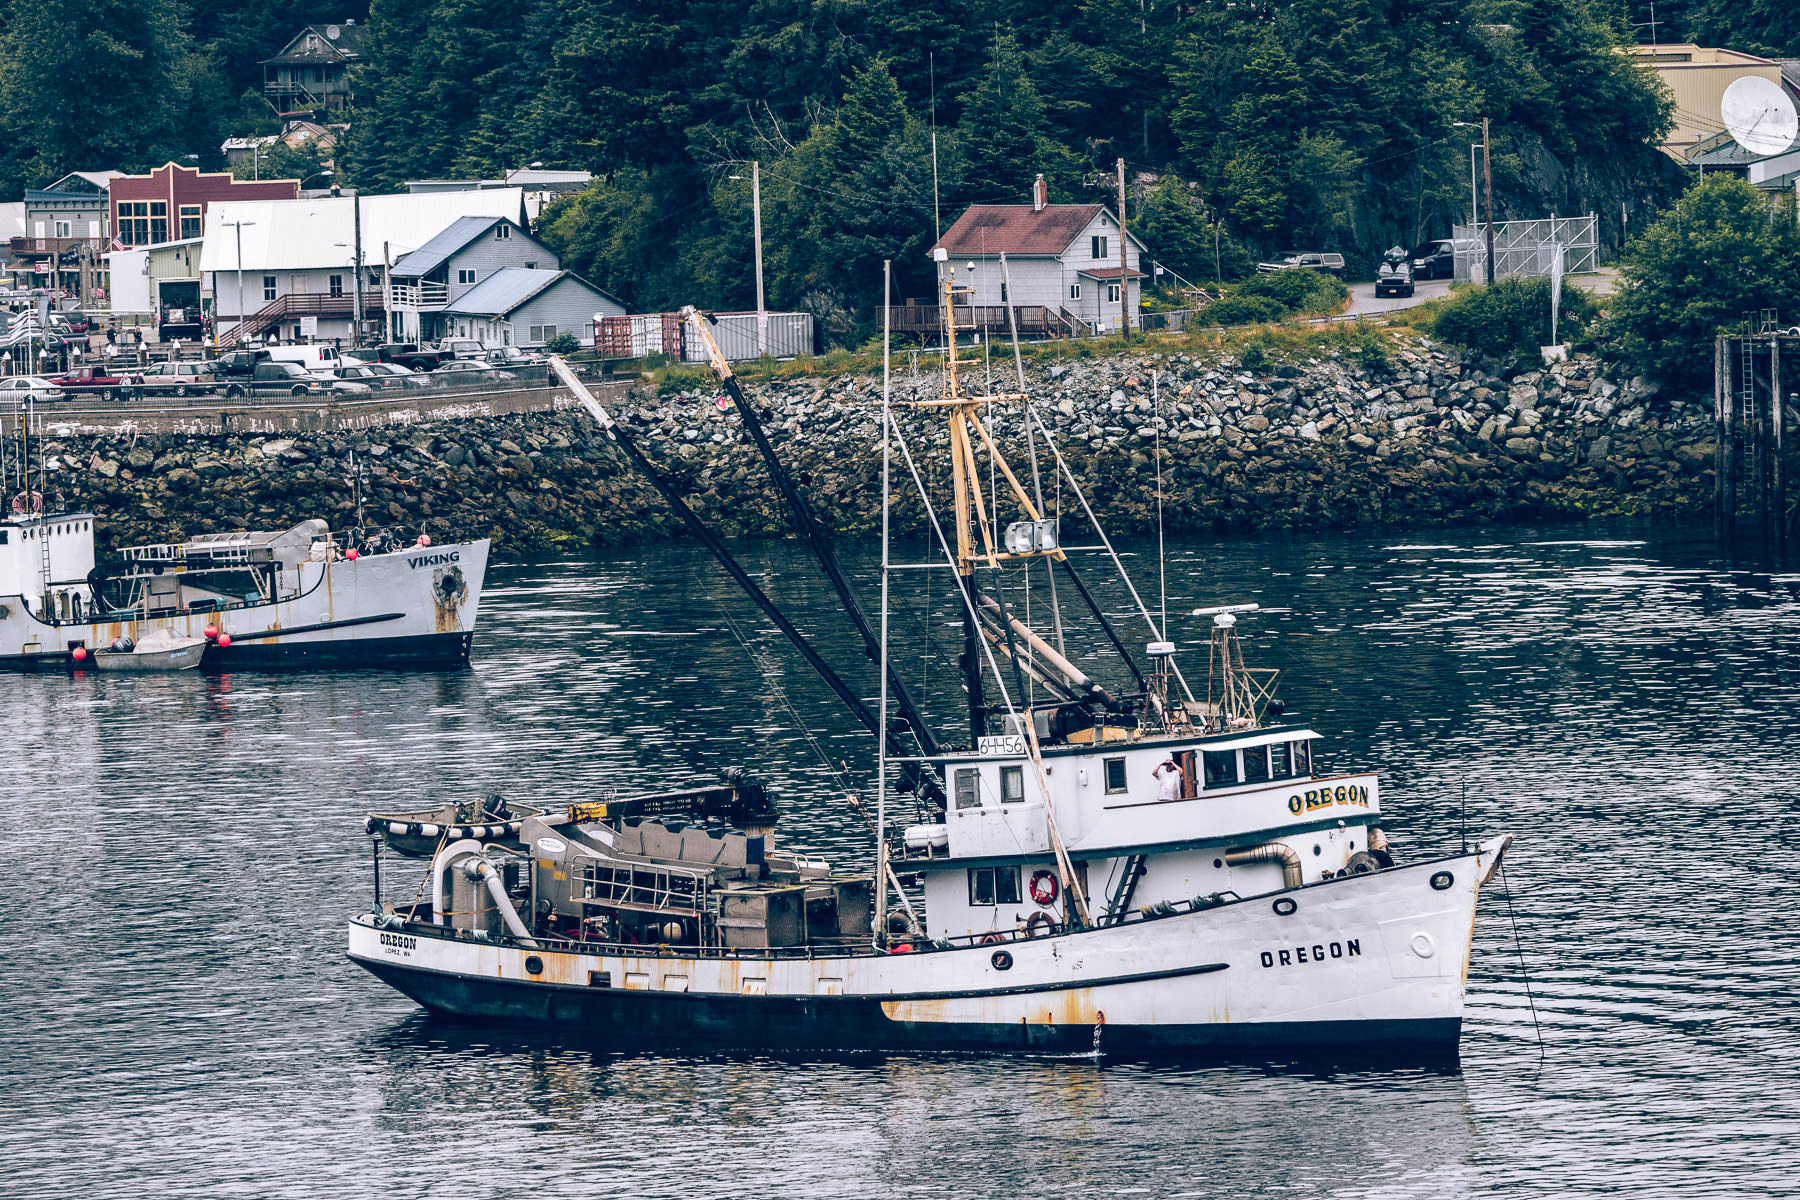 The fishing vessel Oregon, spotted in the Port of Ketchikan, Alaska.